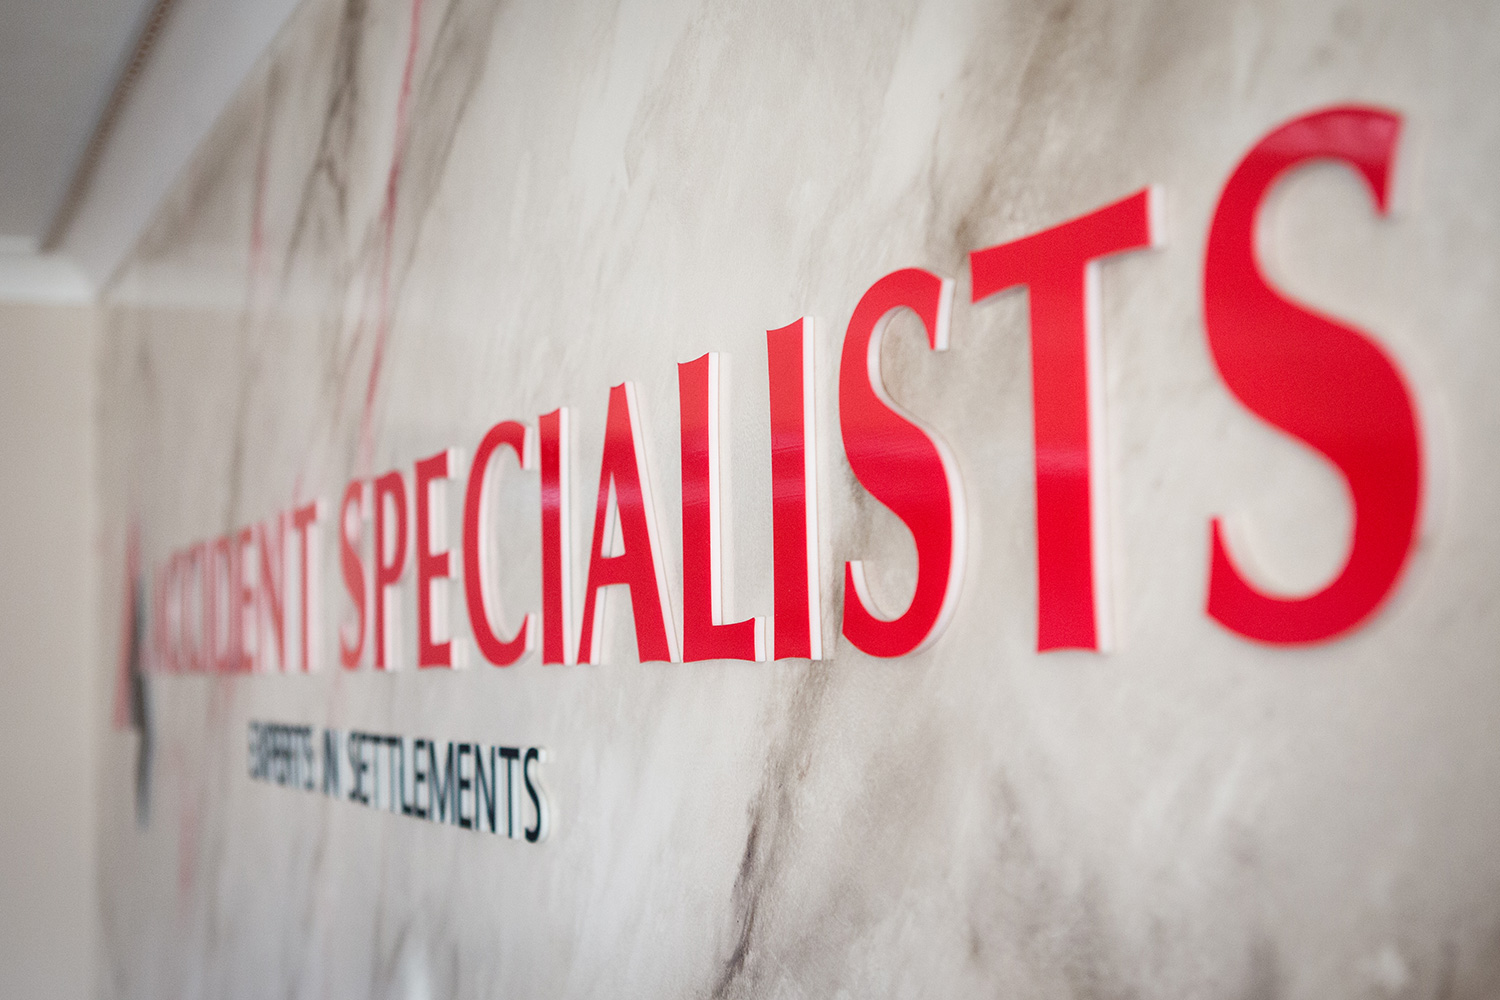 Accident Specialists franchise — an accident claims business opportunity